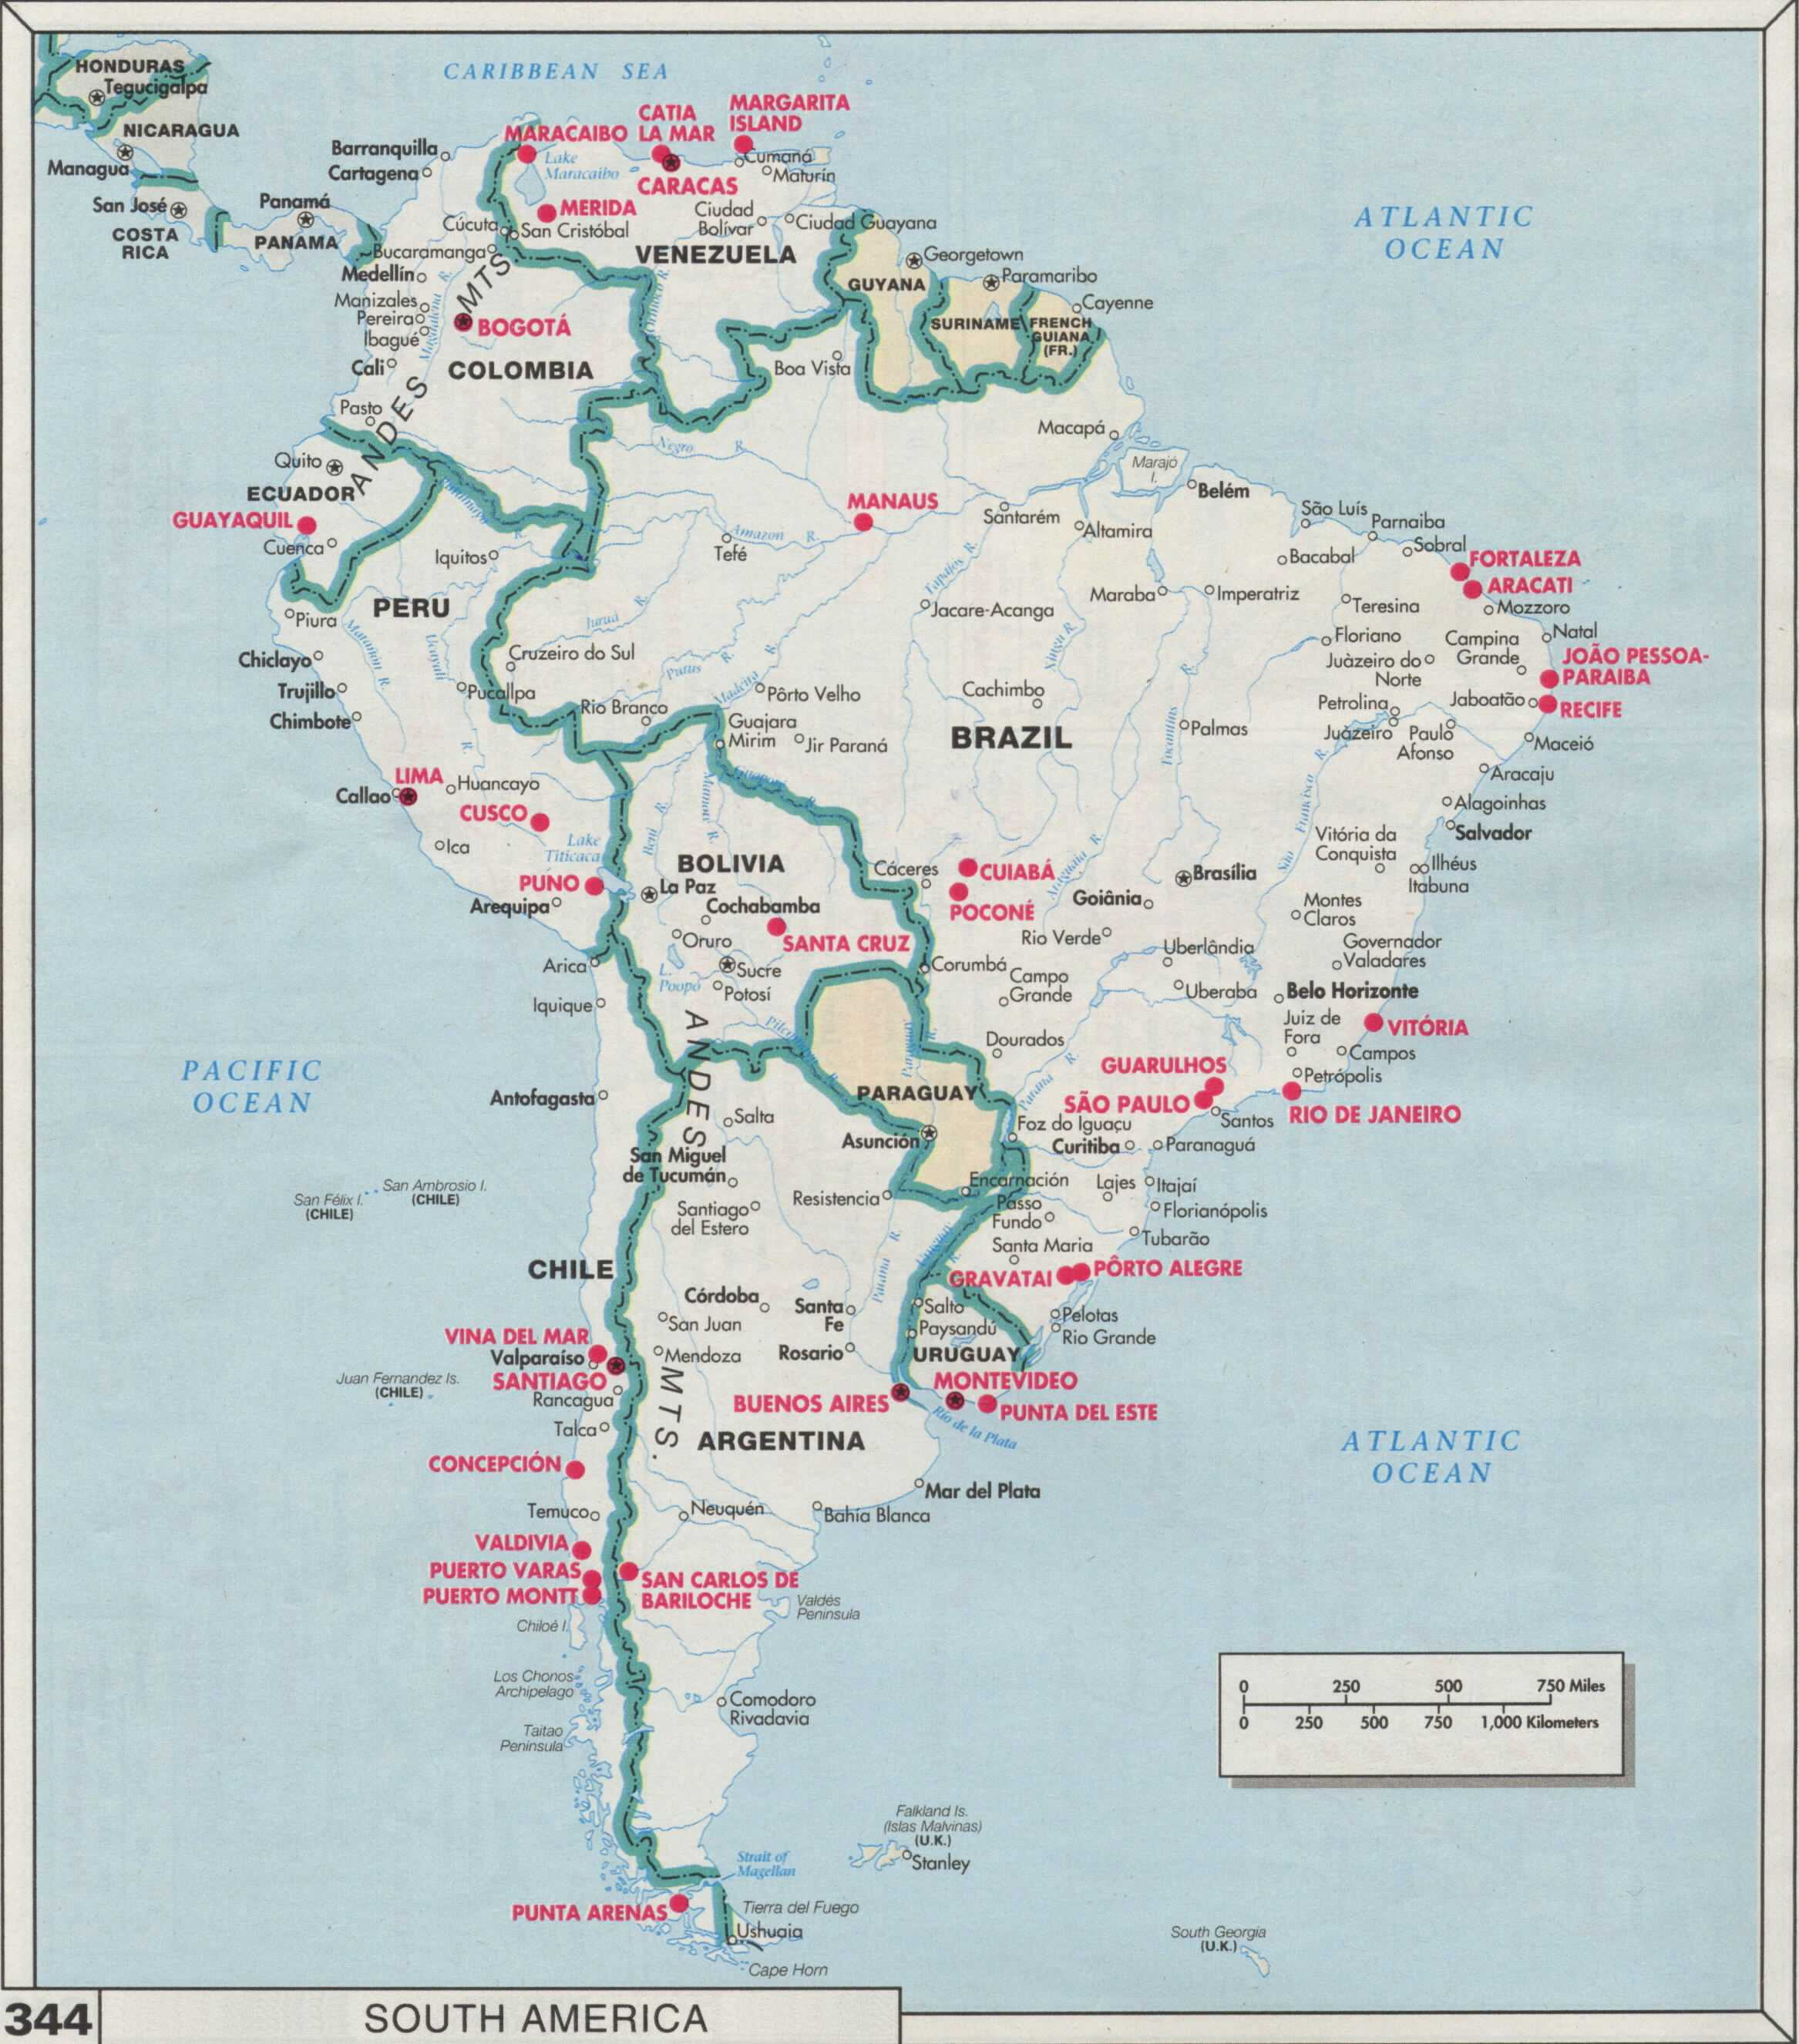 library south america, features south america, road map buenos aires, road map anguilla, road map biology, landlocked country south america, water south america, lake nicaragua map central america, road map suriname, road map martinique, hotels south america, driving in columbia south america, road map brazil, blog south america, destination south america, tourist south america, road map scandinavia, road map zimbabwe, camping south america, trip south america, on south america road map